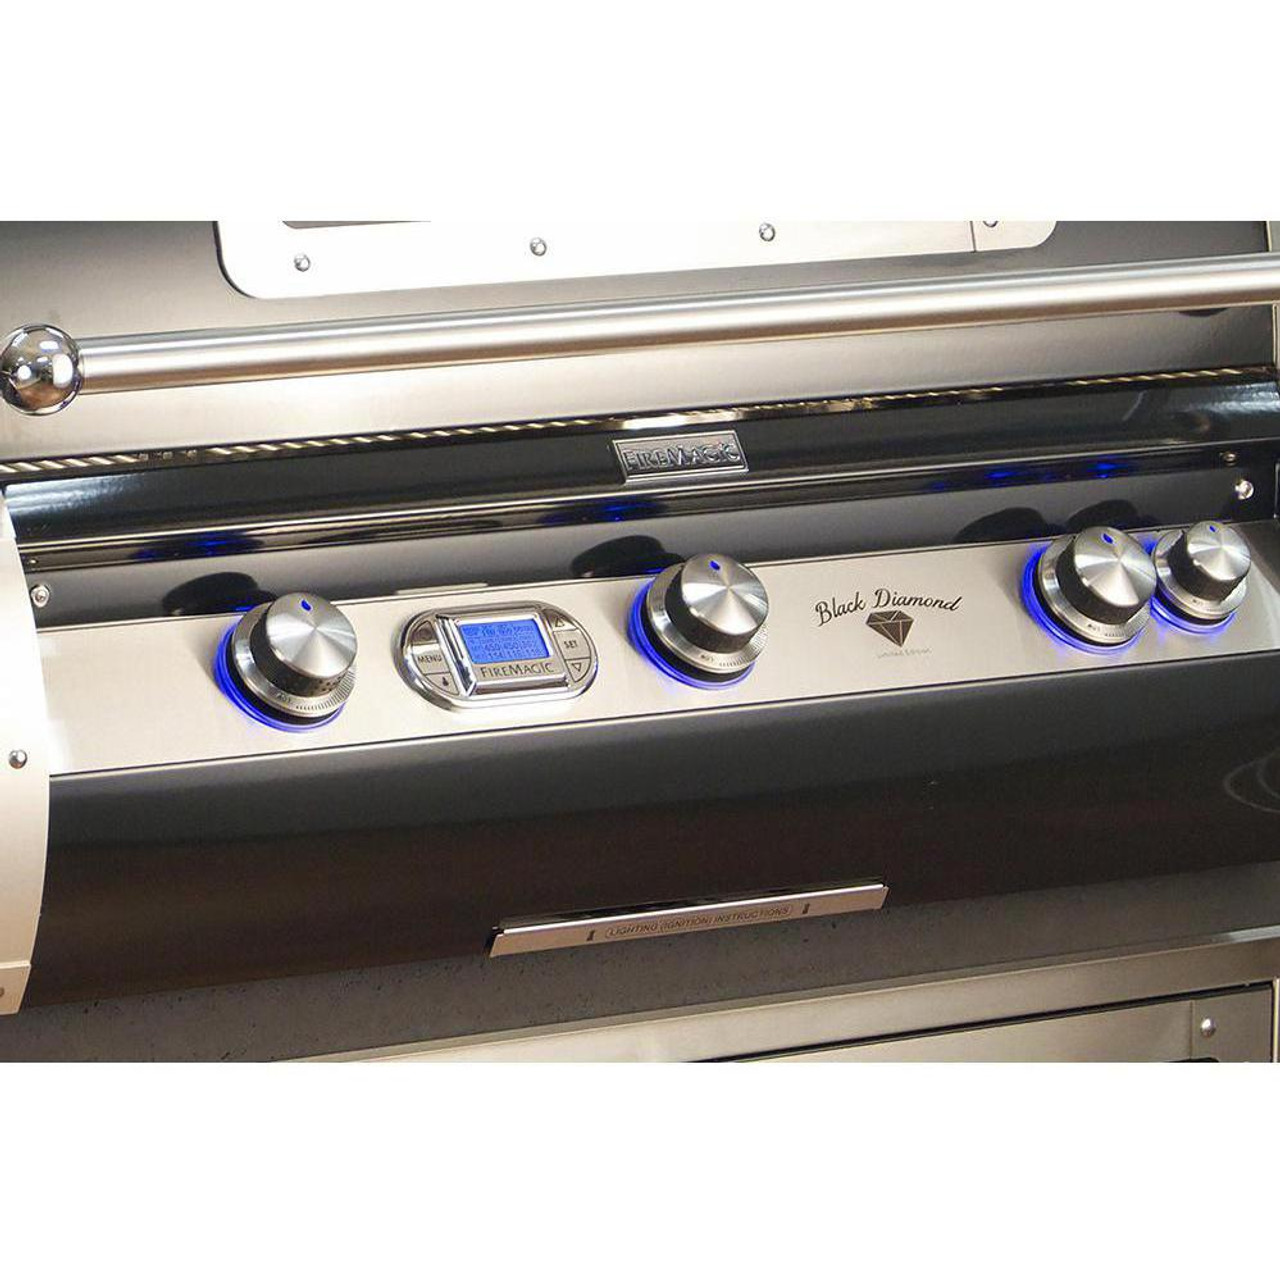 Firemagic Black Diamond Edition  Built-In Grills - H790i with Magic View Window and Left Side Infrared Burner